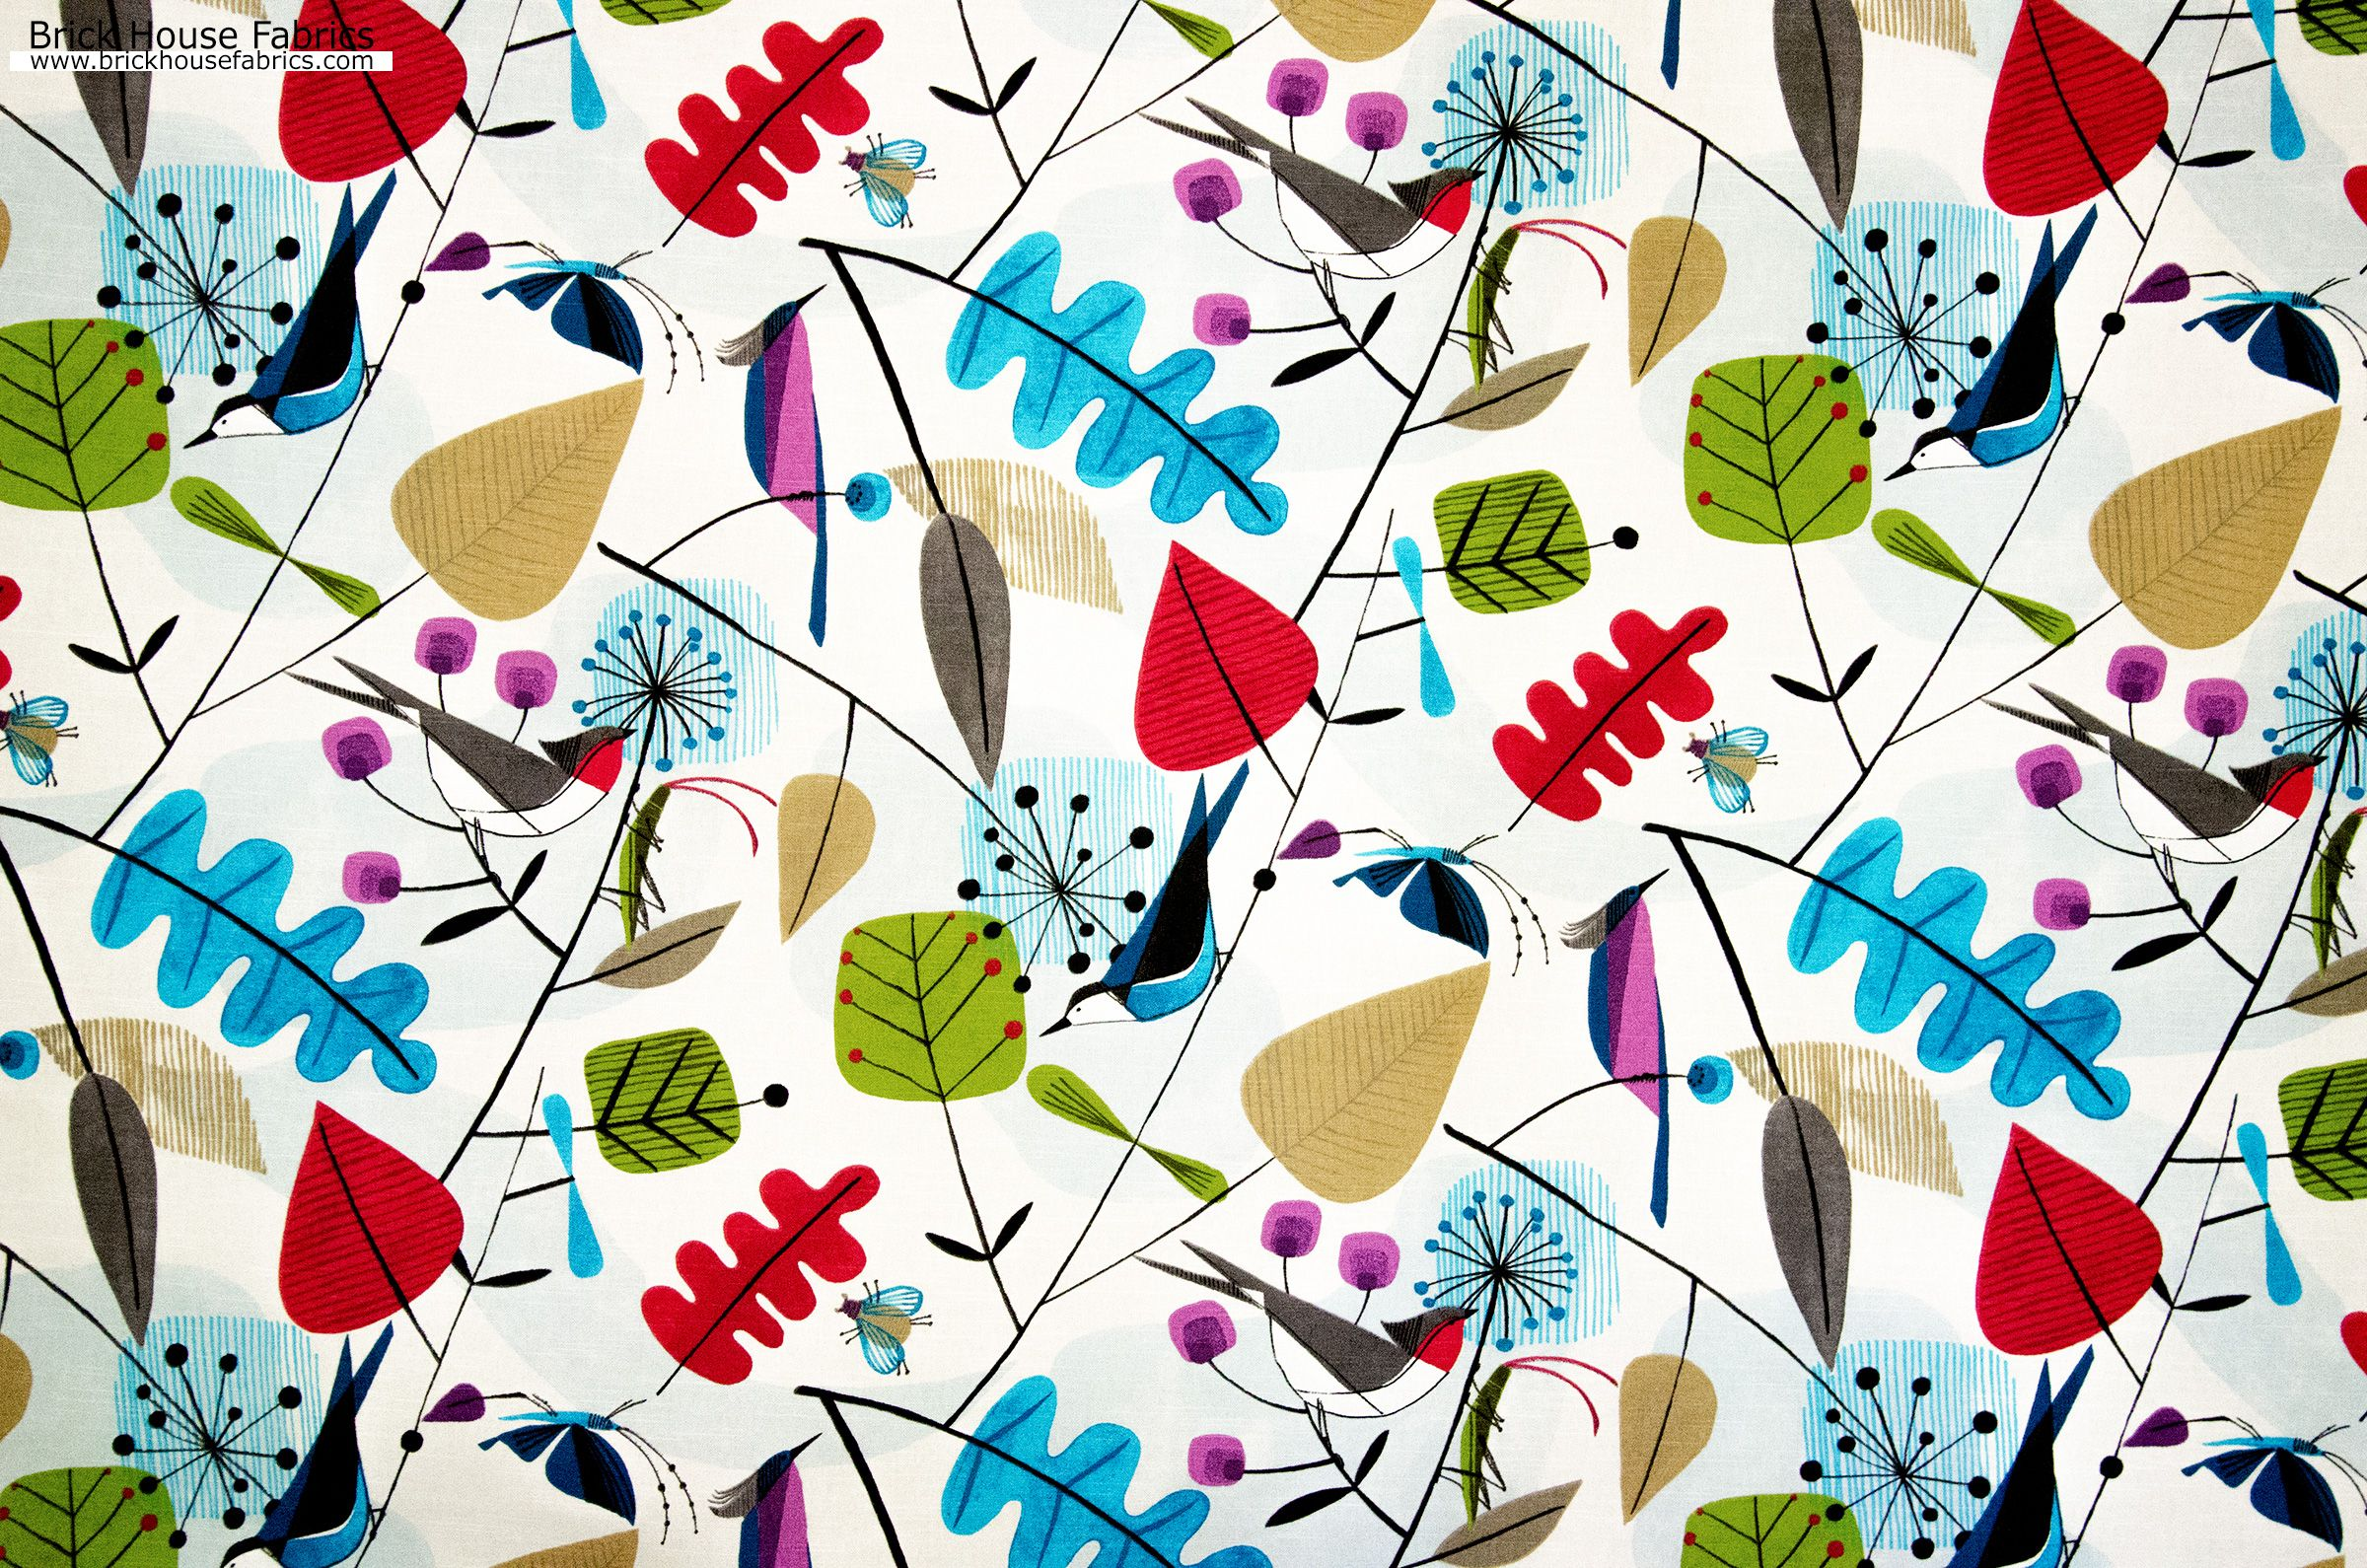 Scandinavian Fabric Retro Modern Graphic Bird Leaves Birds Flowers Leaves Come Together On This Retro Mo Scandinavian Fabric Fabric Birds Fabric Wallpaper